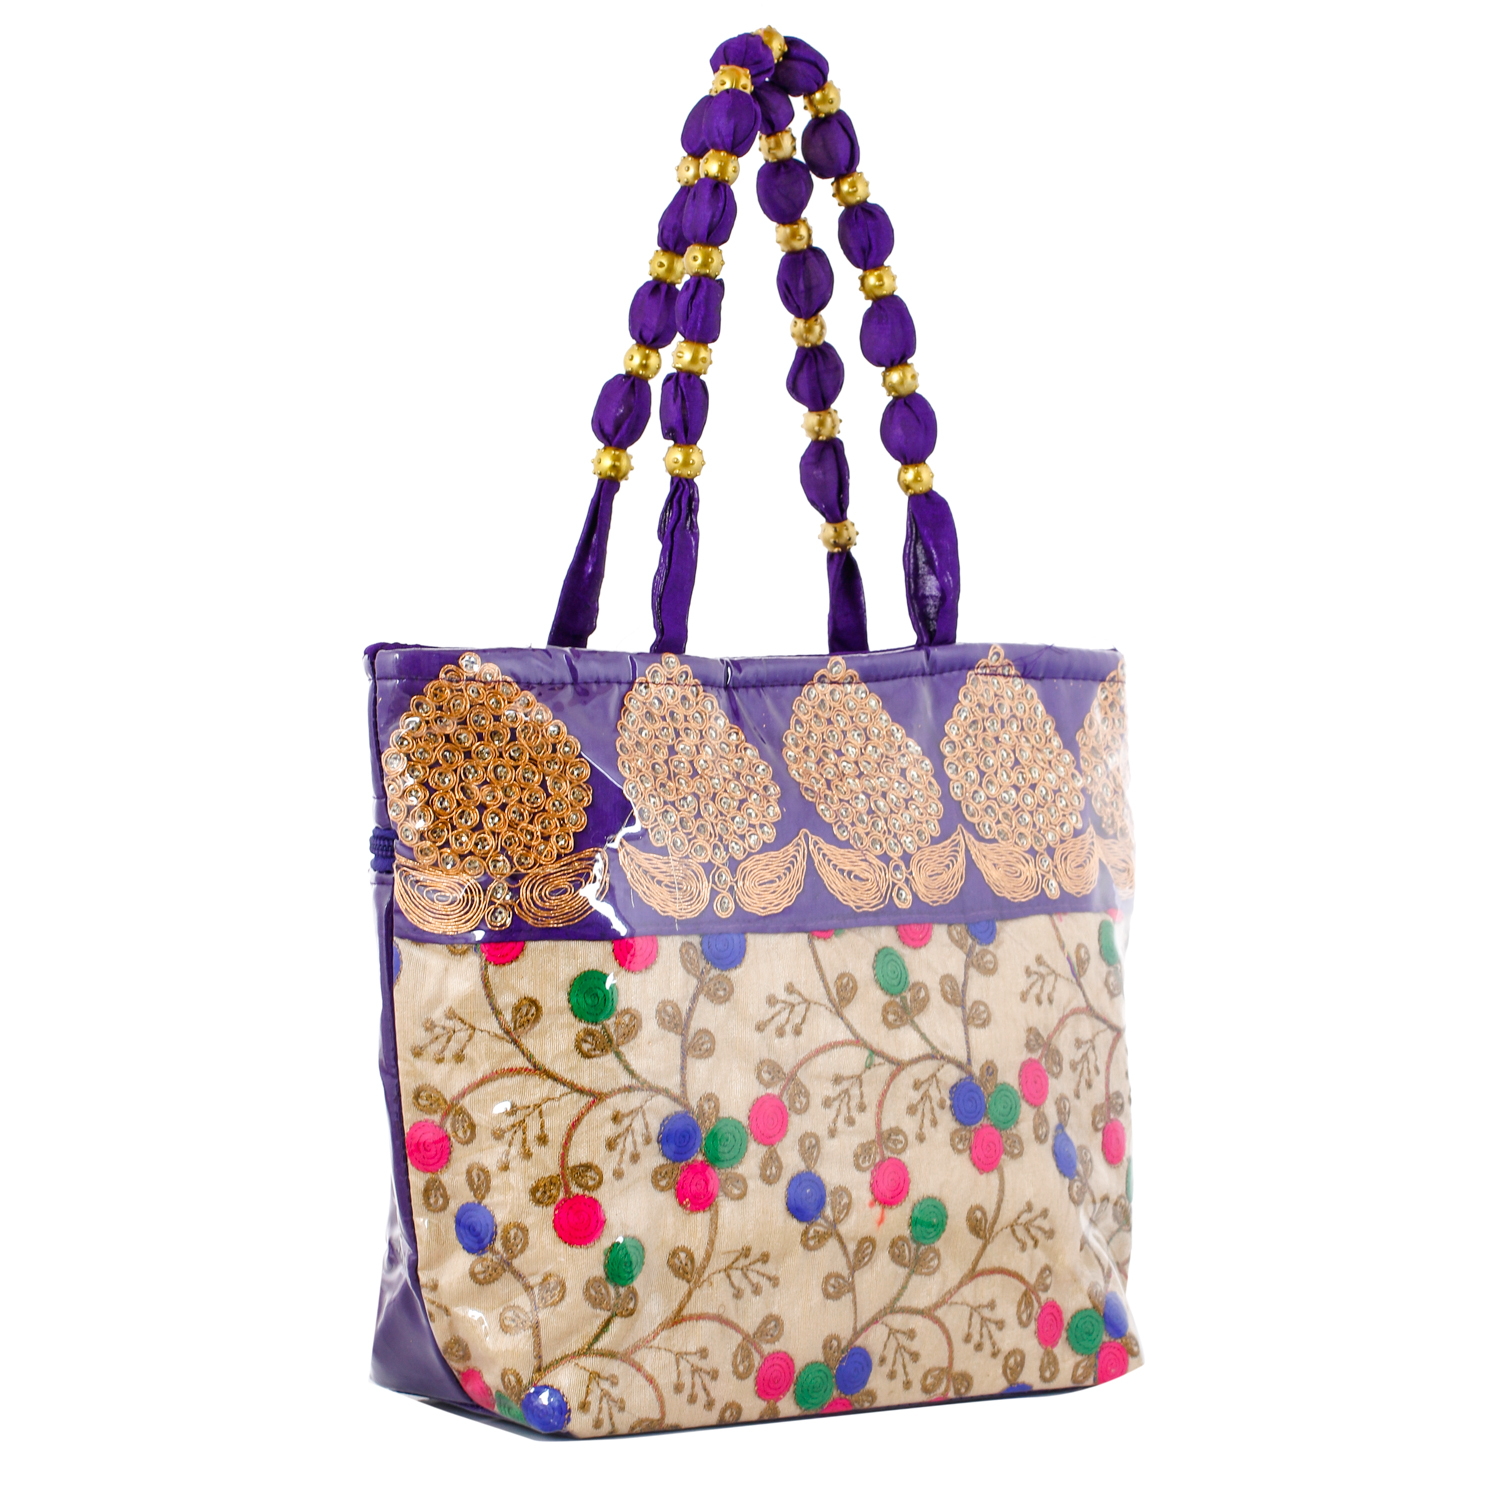 Kuber Industries Floral Design Silk Laminated Embroidered Women's Handbag (Purple) - CTKTC23117